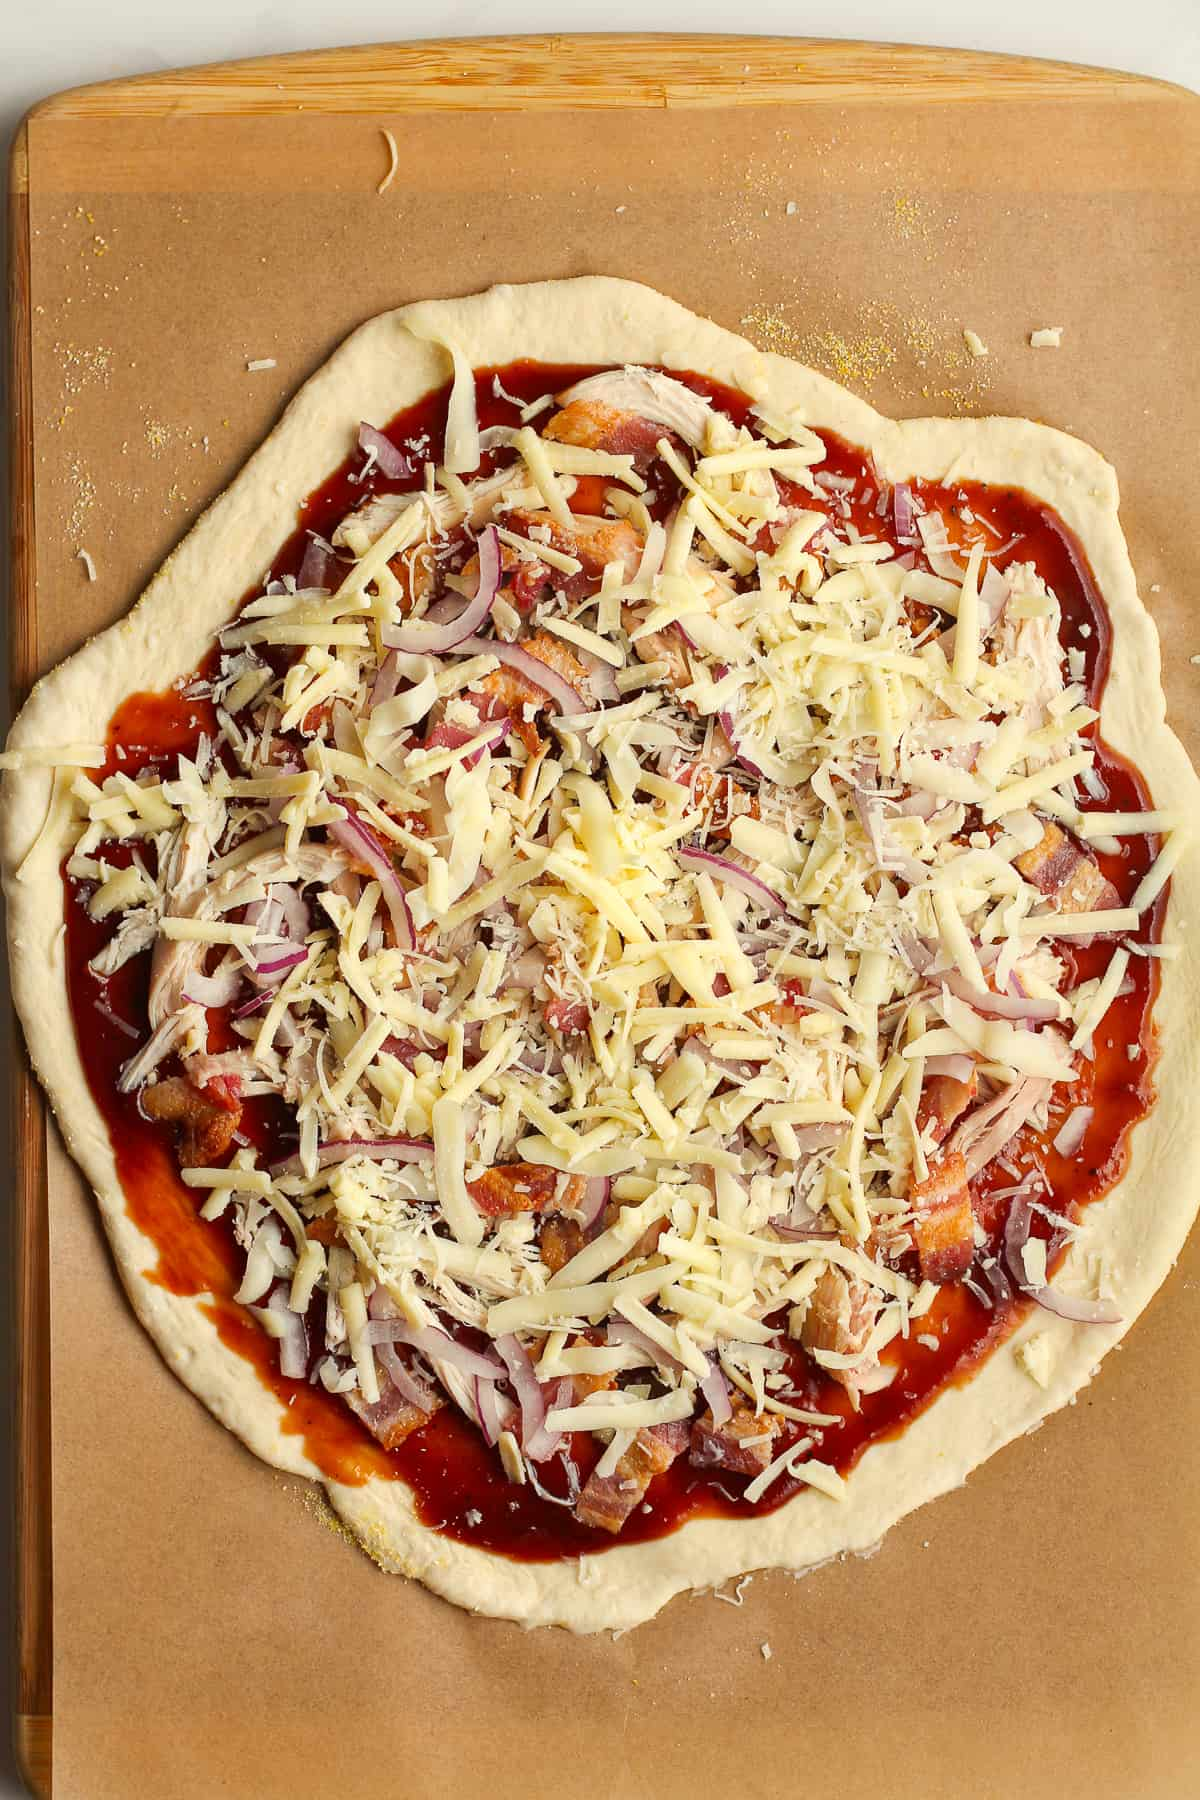 The pizza before cooking.